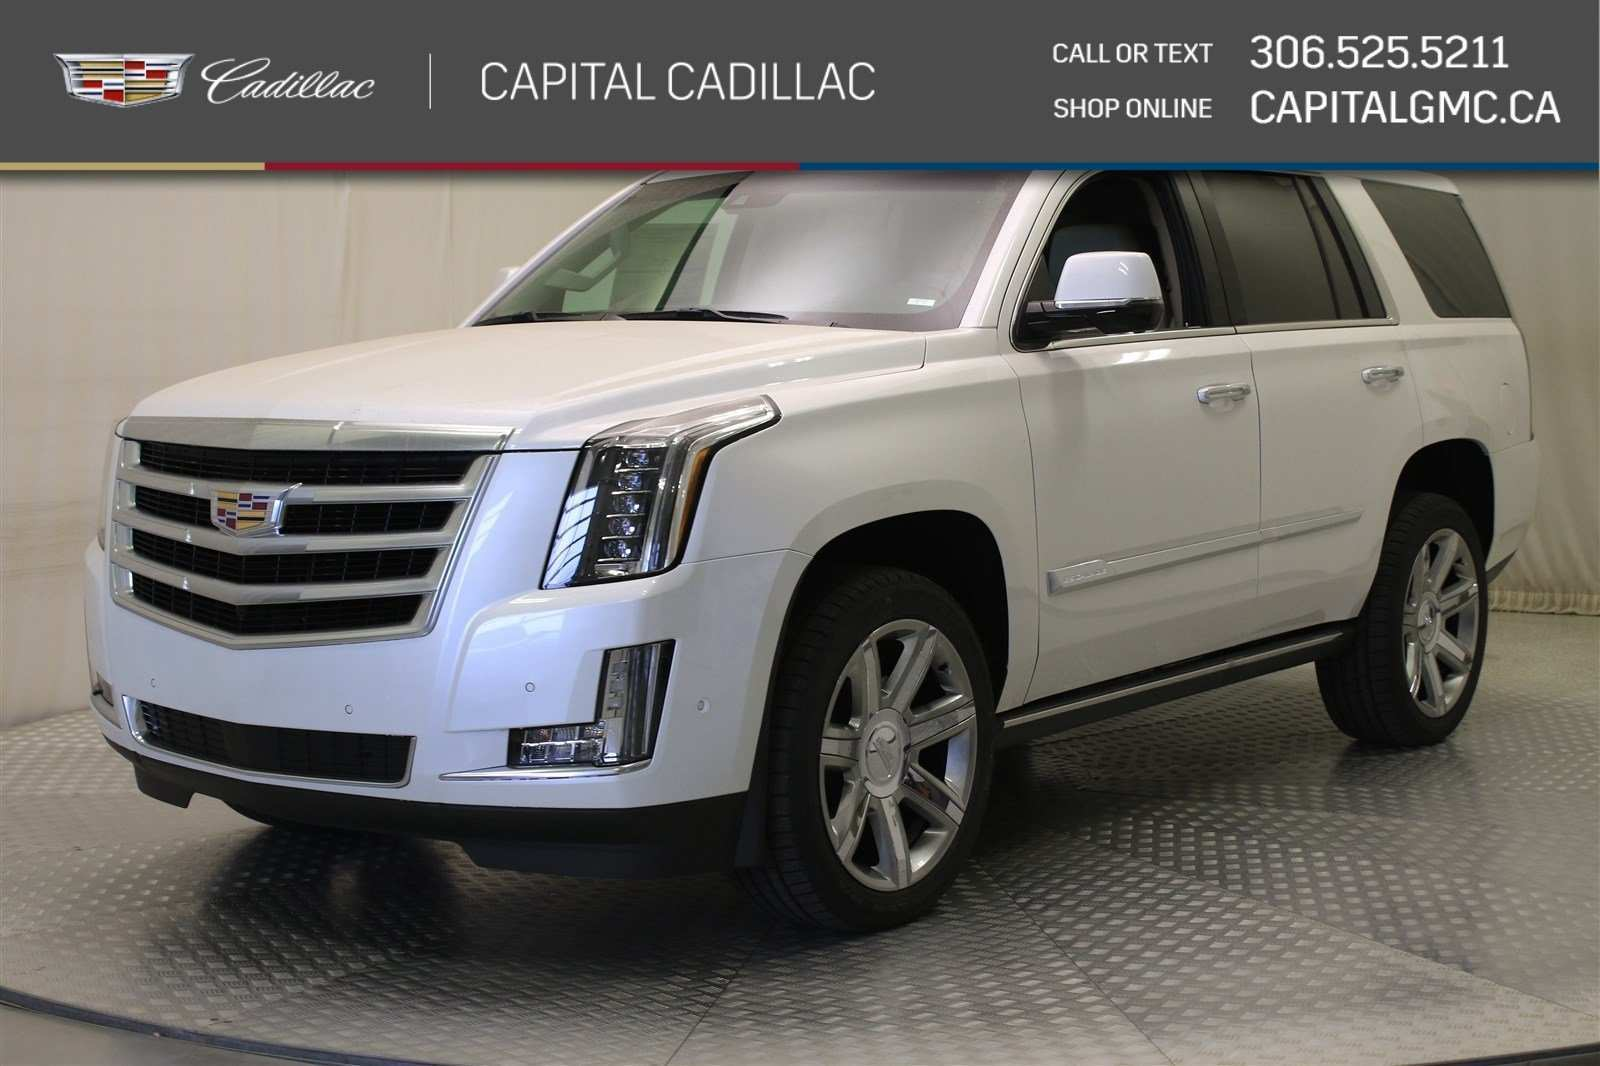 47 New 2019 Cadillac Escalade Luxury Suv Style